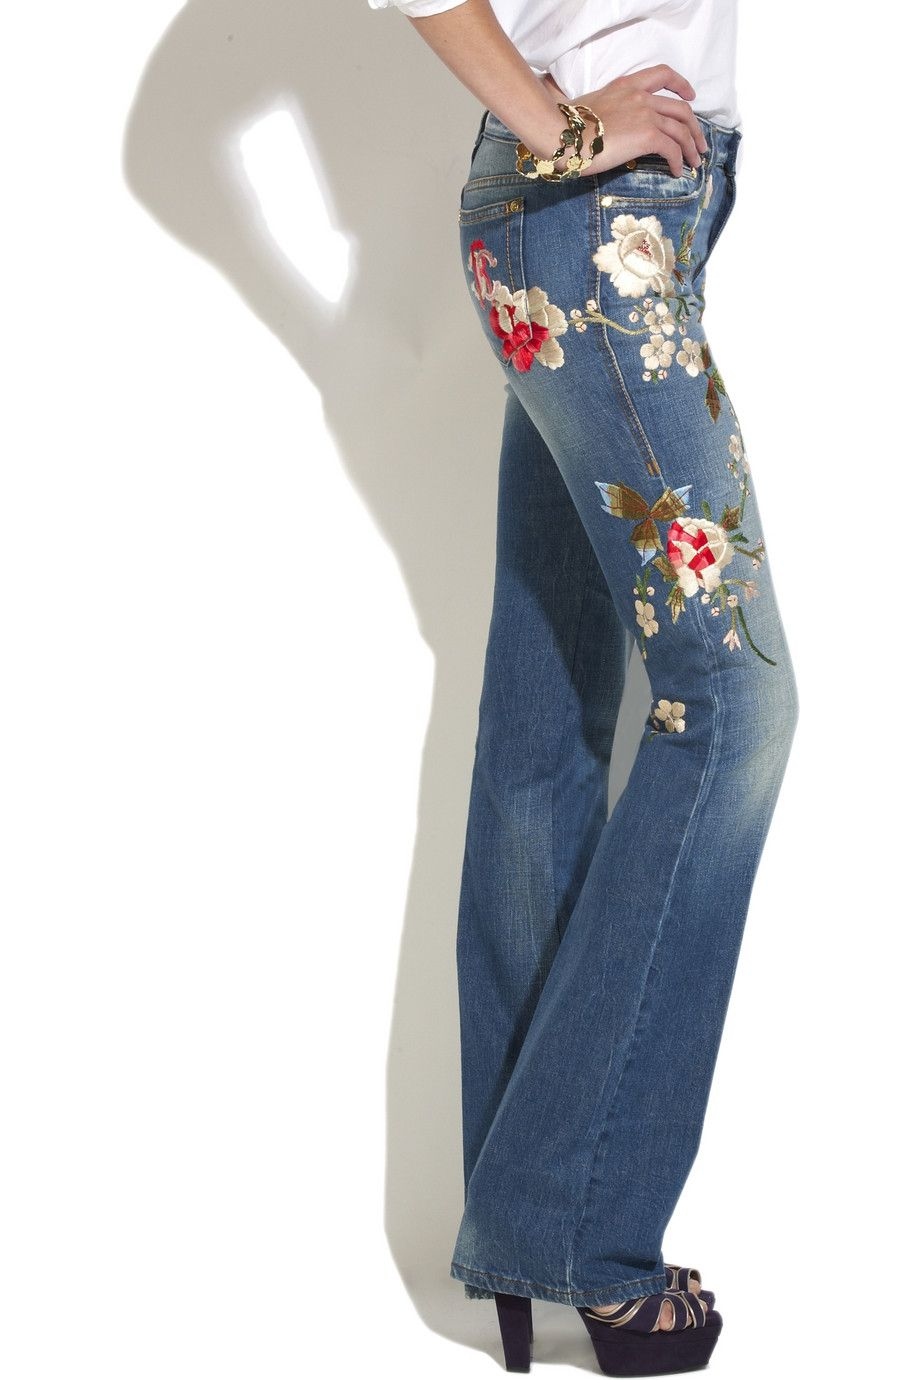 I loves me some embroidered jeans im just a stinky hippie at fitted flare jeans with flower embroidery awful shoes though ccuart Images